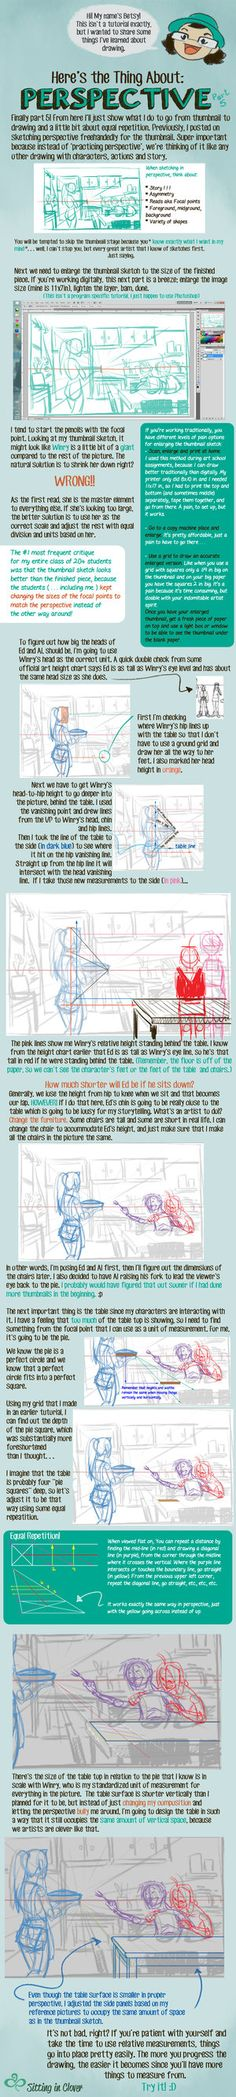 05 Here's the Thing About 1pt Perspective by betsyillustration.deviantart.com on @DeviantArt